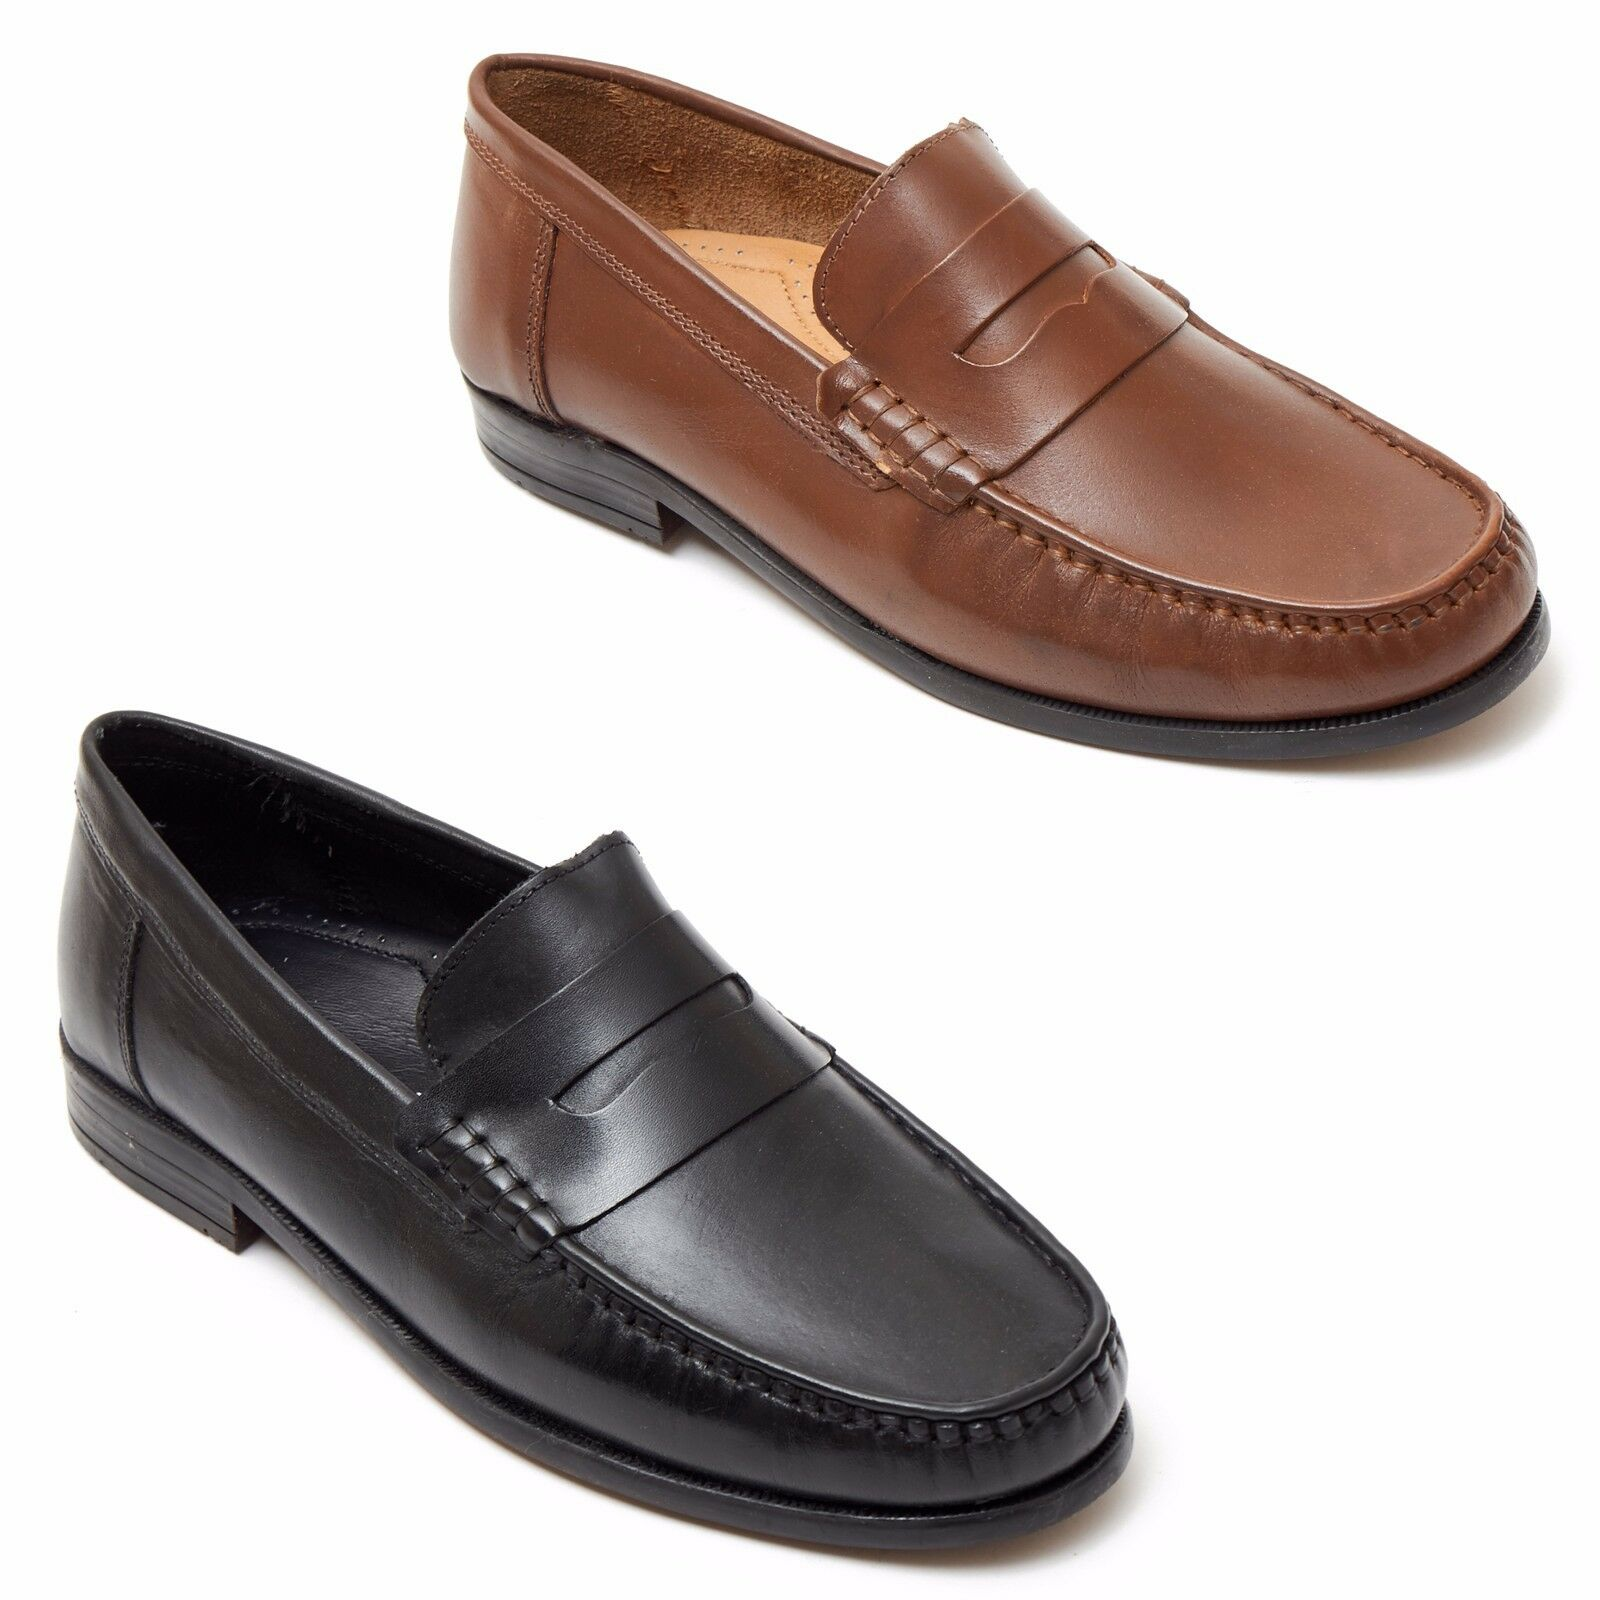 Men's Real Leather Slip on Moccasins shoes for Work Causal Formal styles